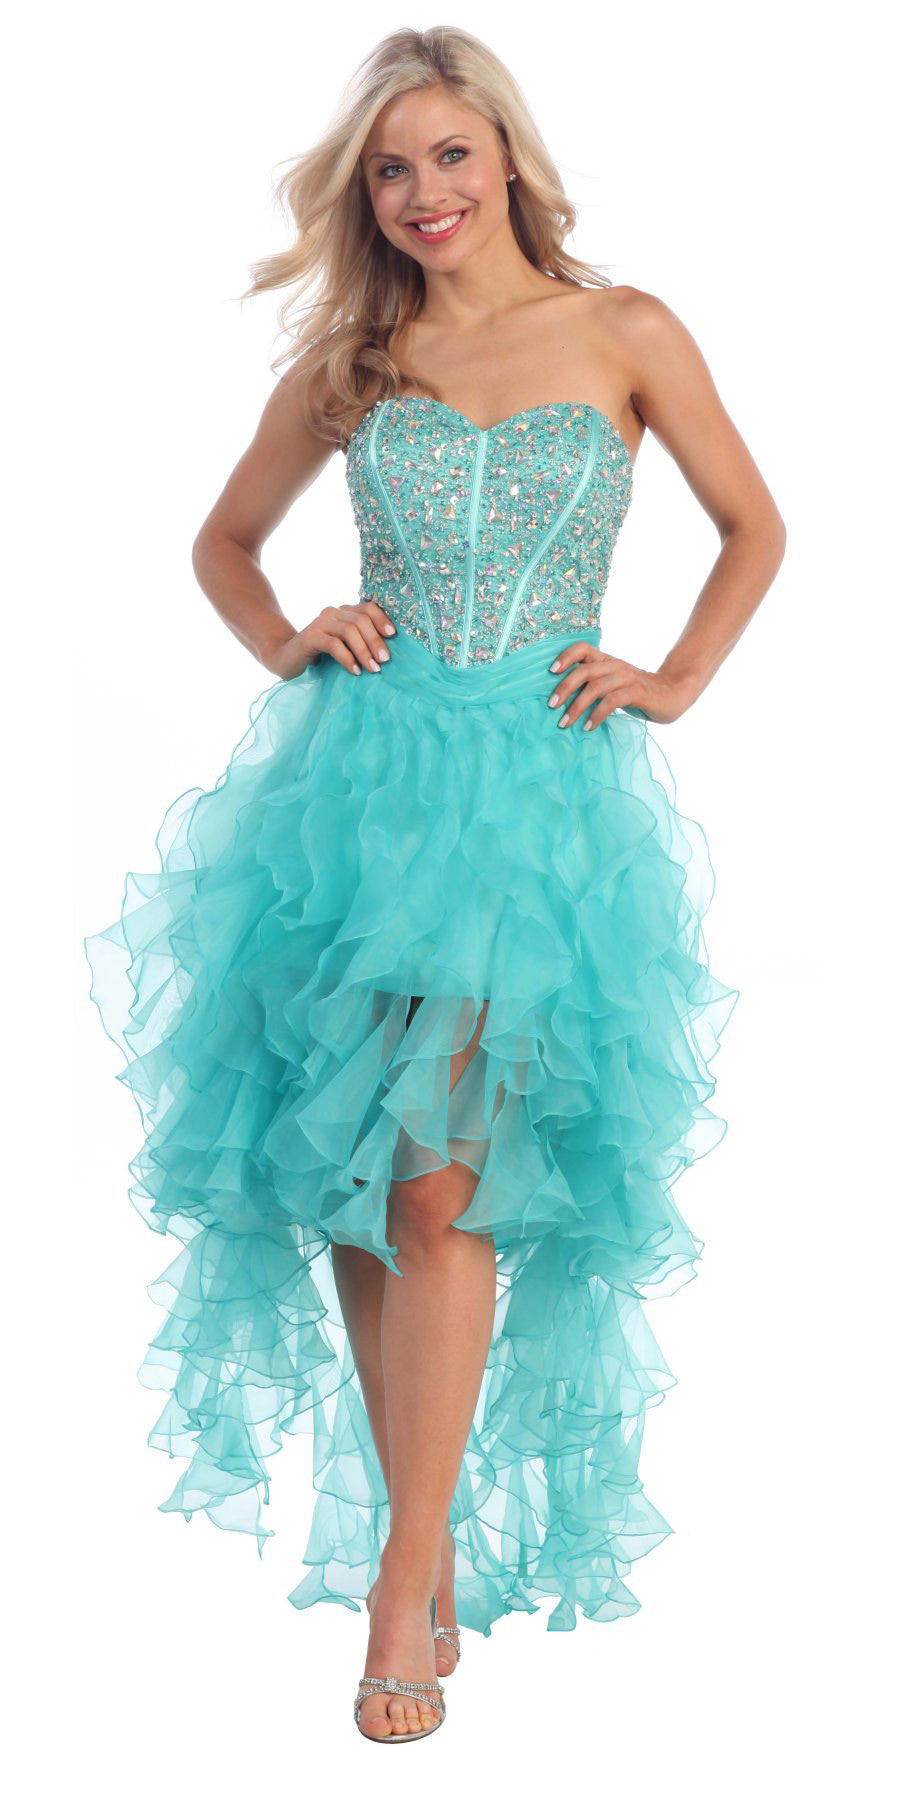 Ruffled Organza Skirt With Embroidered And Beaded Bodice: High Low Jade Dress Organza Ruffle Skirt Boned Corset